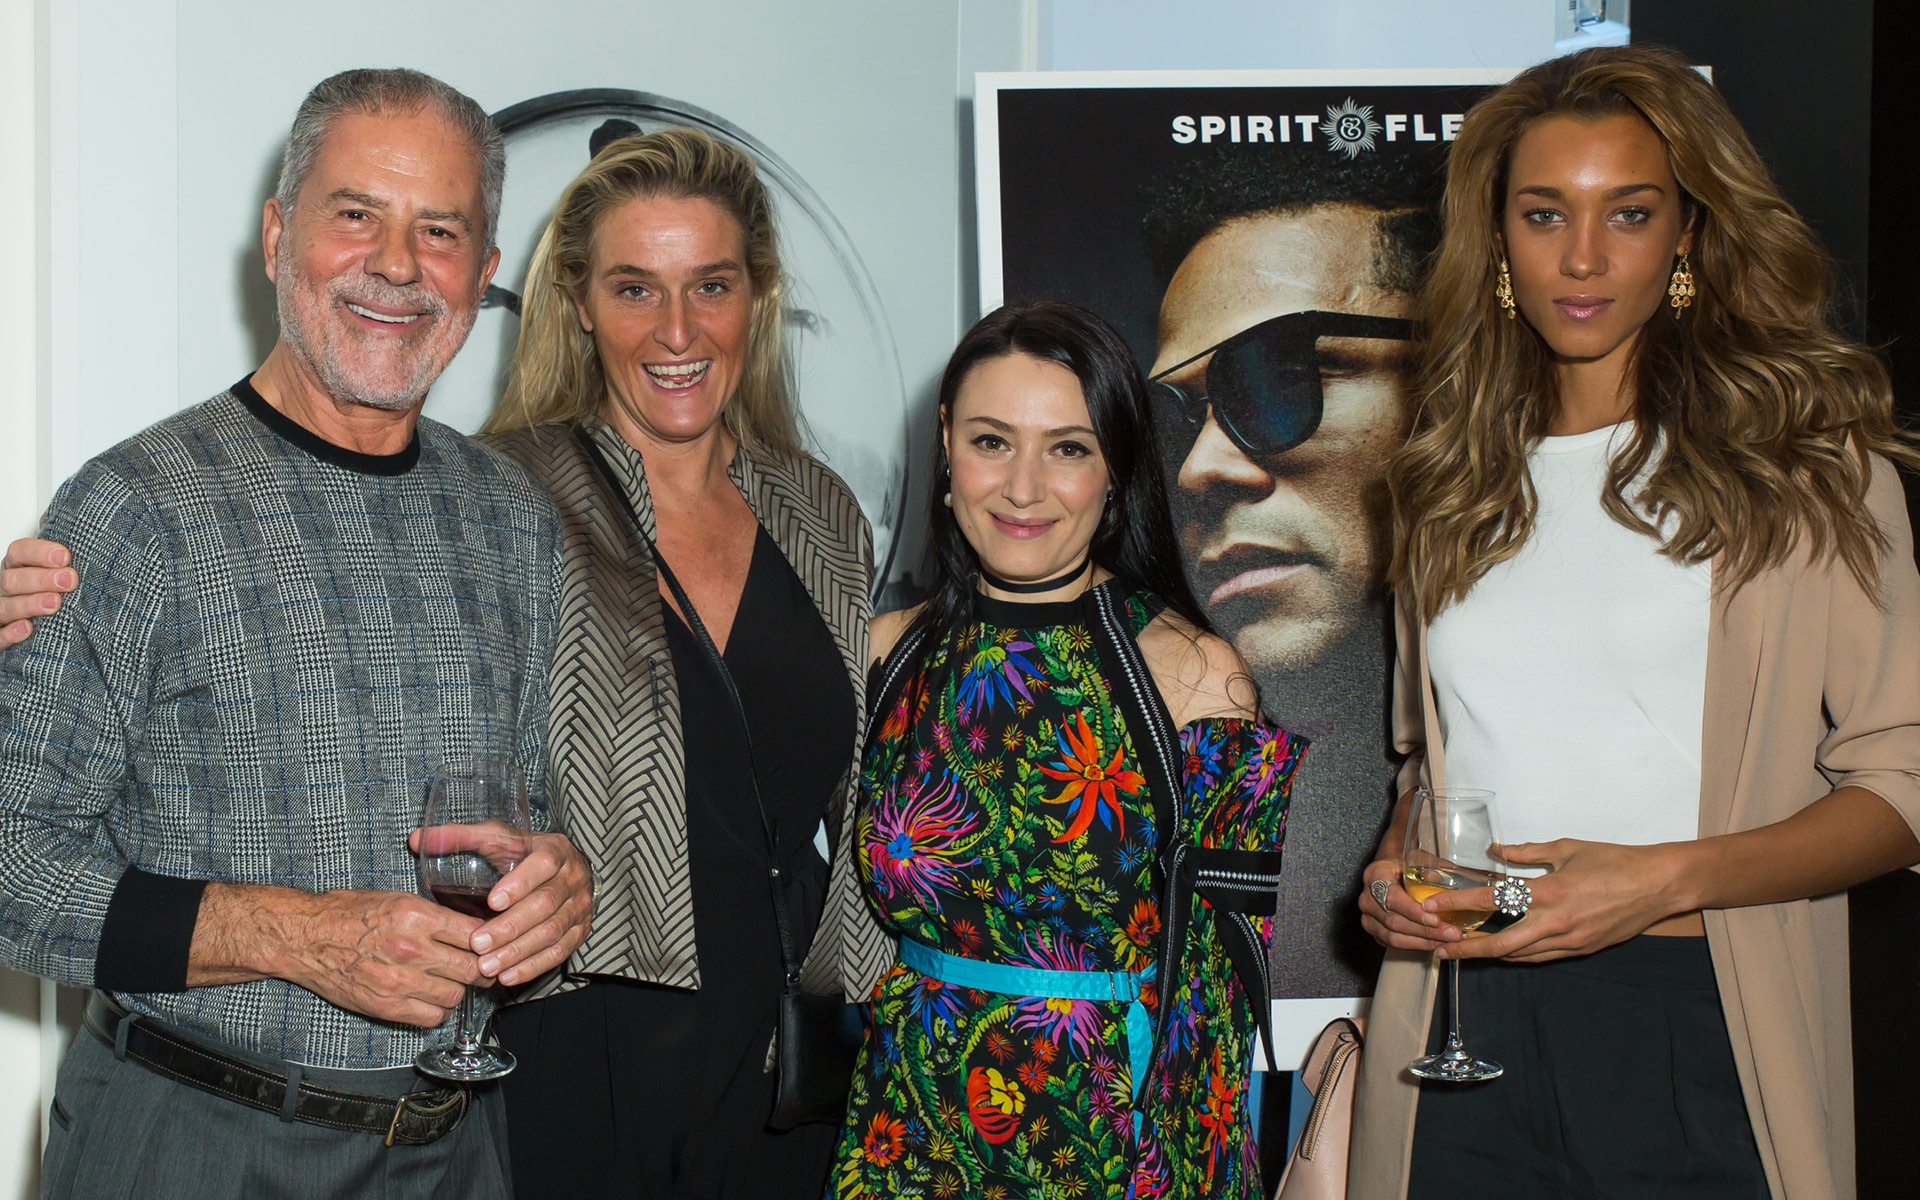 Left to Right: Thanos Kamiliotis, Anjelina Jolin, Yelena Deyneko and Ebony Anderberg, at Edition Hotel, celebrating Maxwell birthday and Spirit & Flesh magazine cover story by Mark Seliger